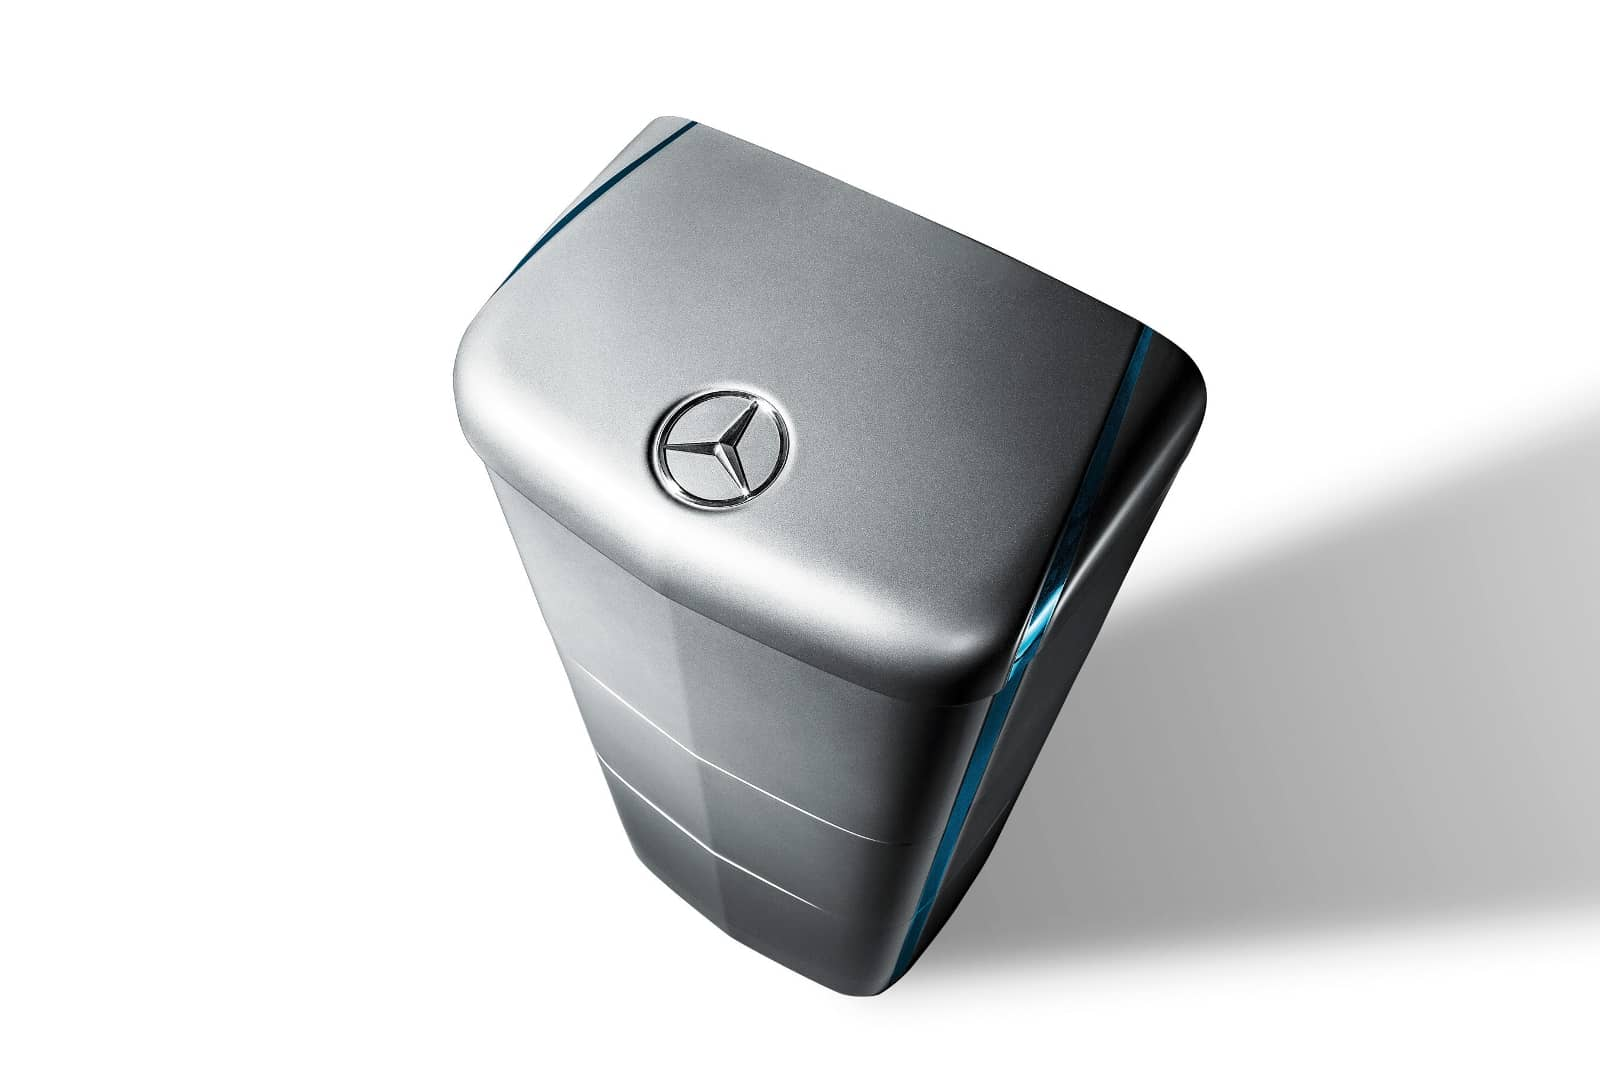 Mercedes Mercedes-Benz Energy Storage Systems Are Coming To The U.S.